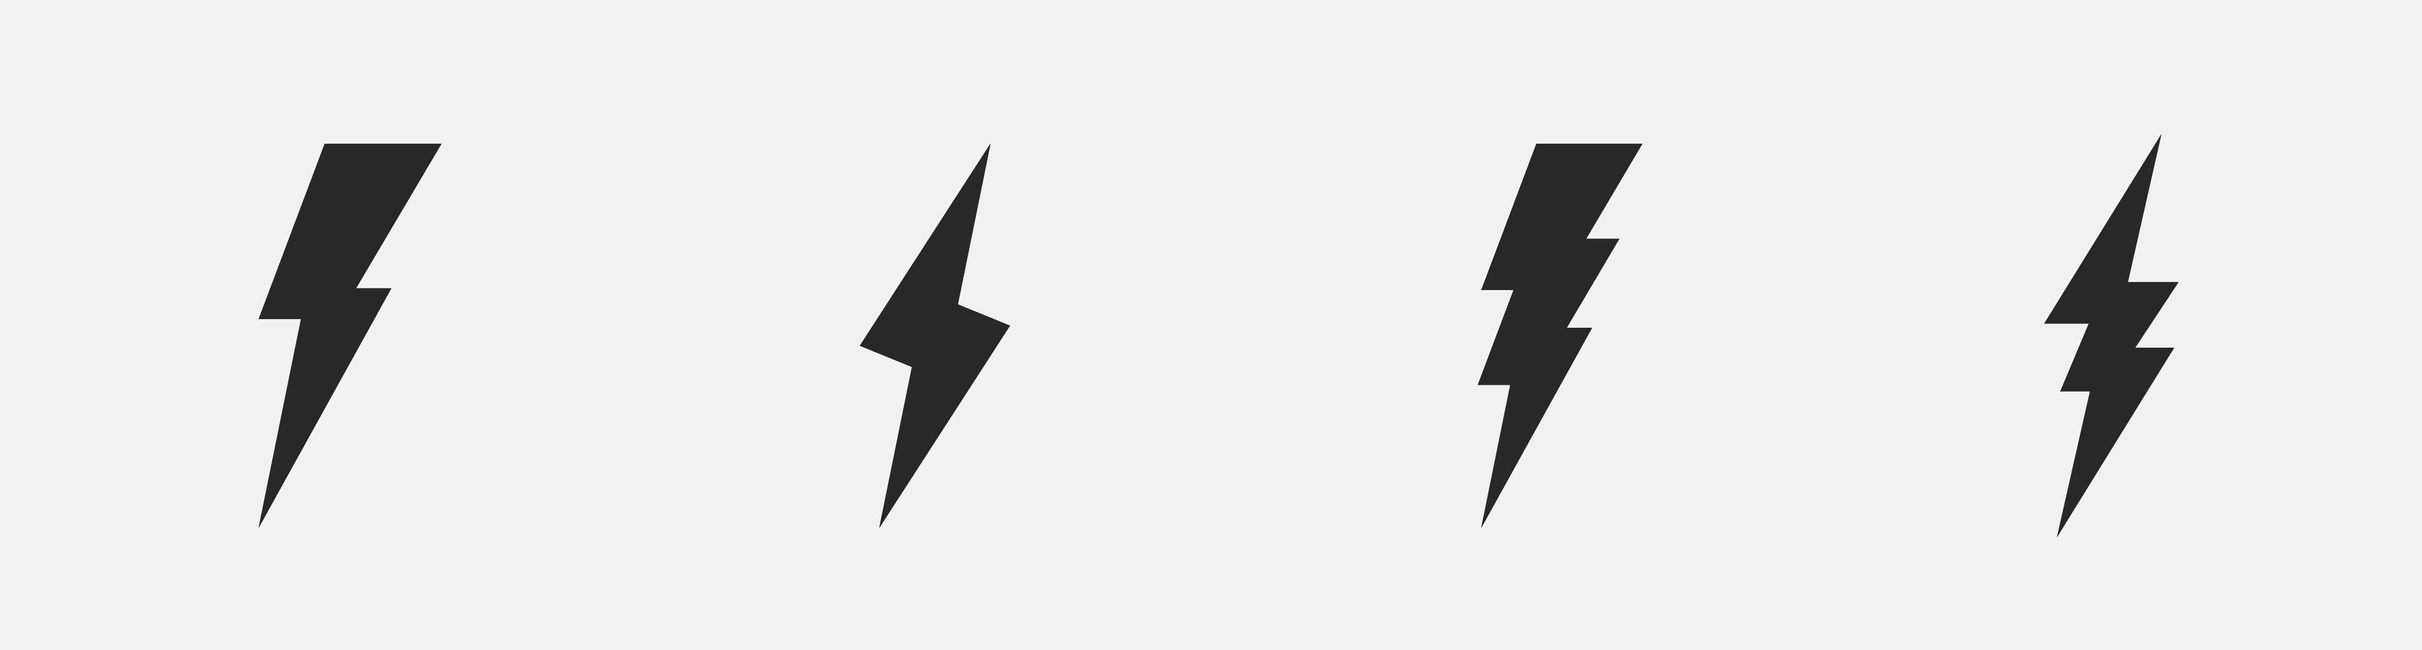 Symbols of electricity in the form of four lightning bolts.